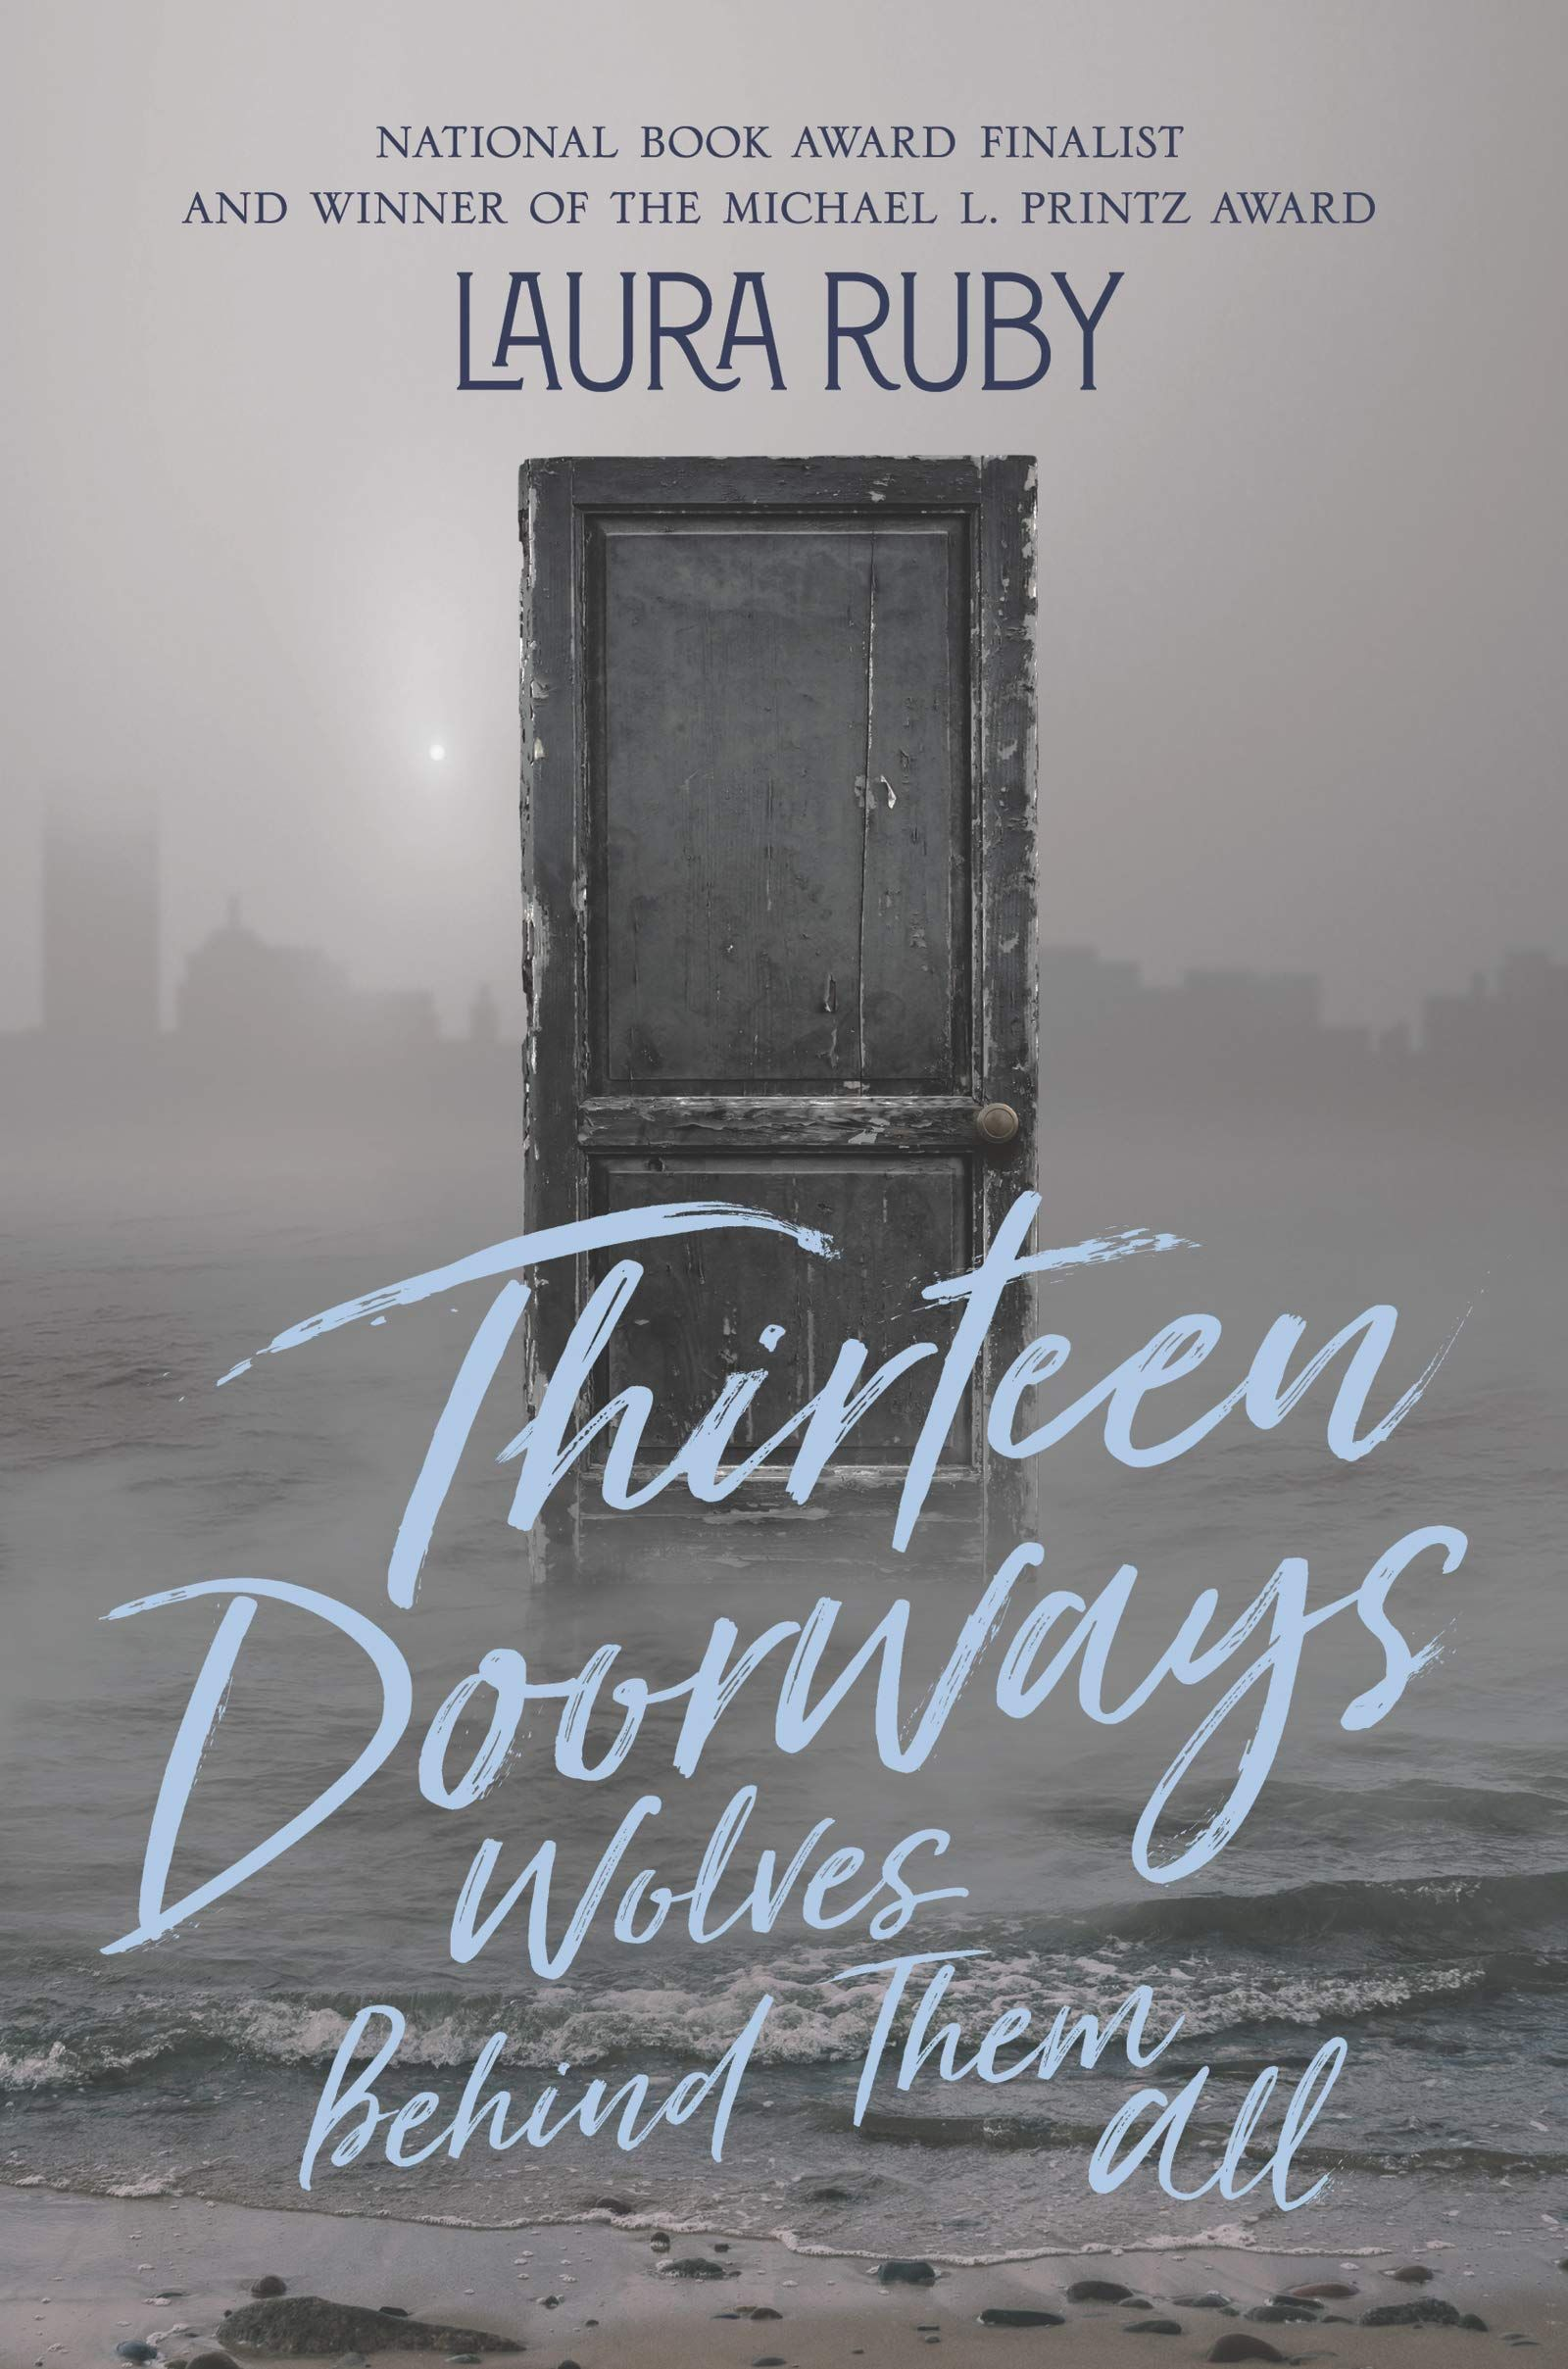 Pdf Download Thirteen Doorways Wolves Behind Them All By Laura Ruby National Book Award Book Awards The Book Thief